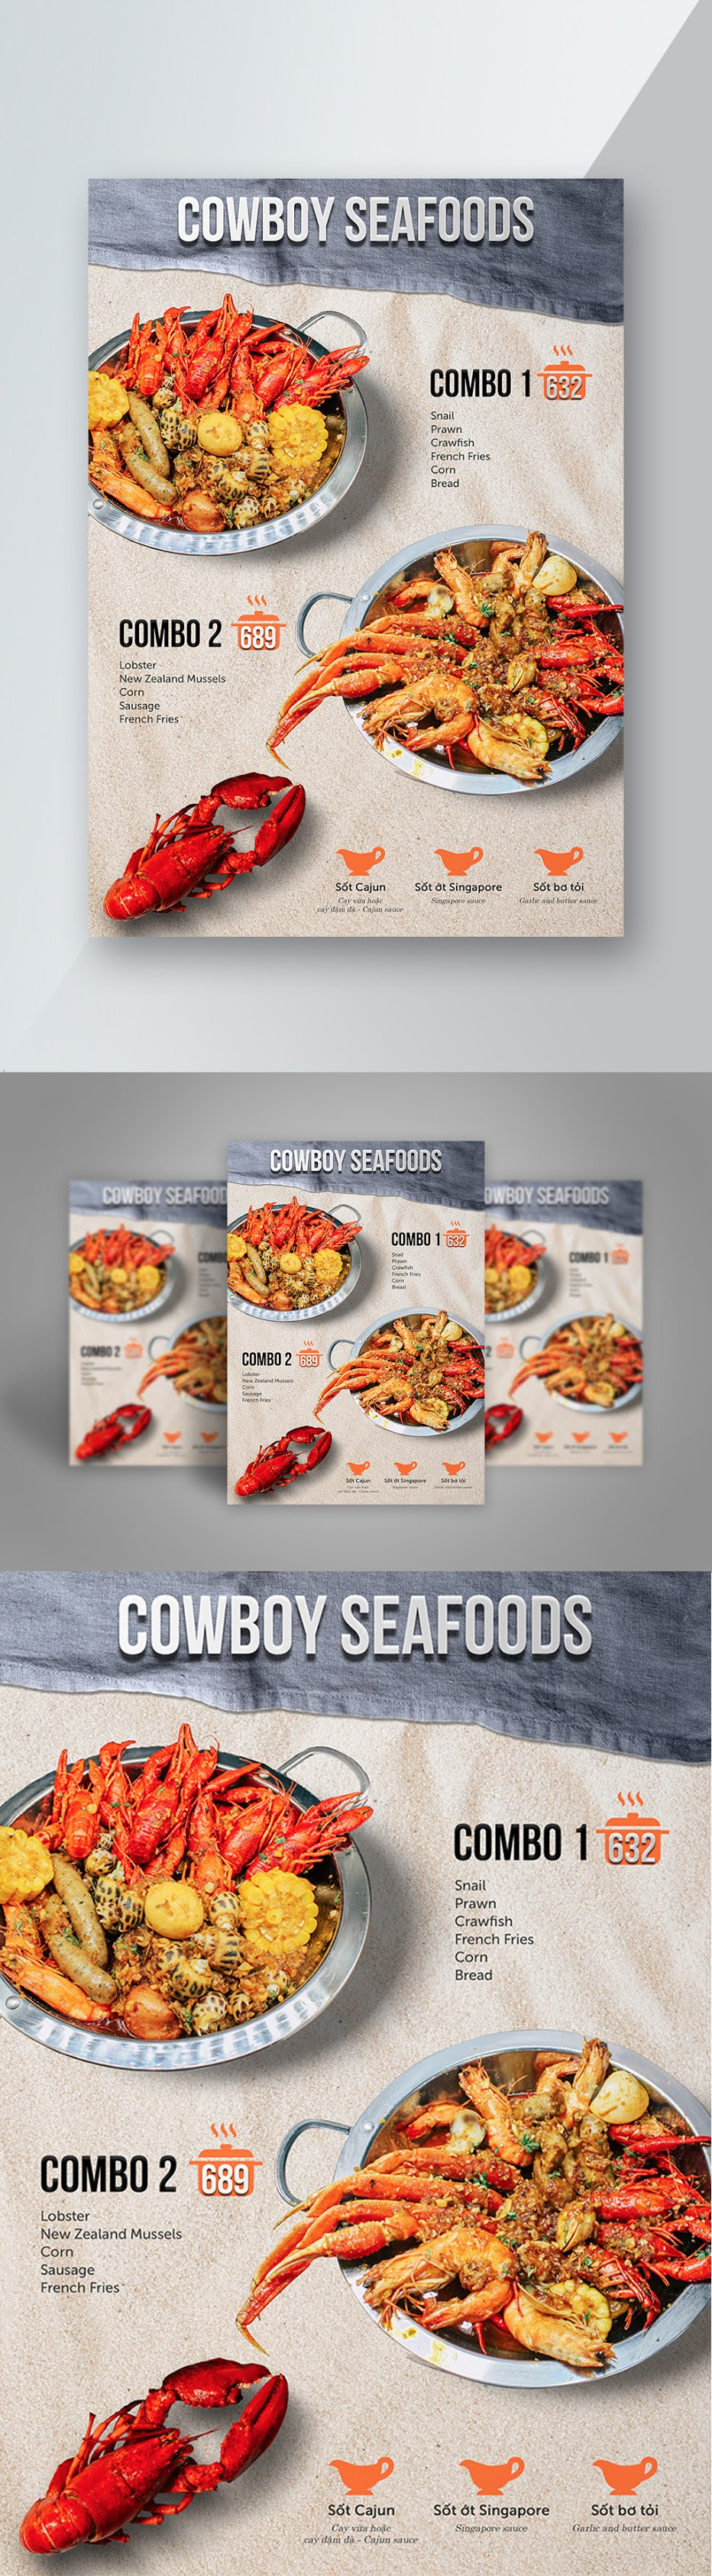 PSD file seafood flyer open source food poster